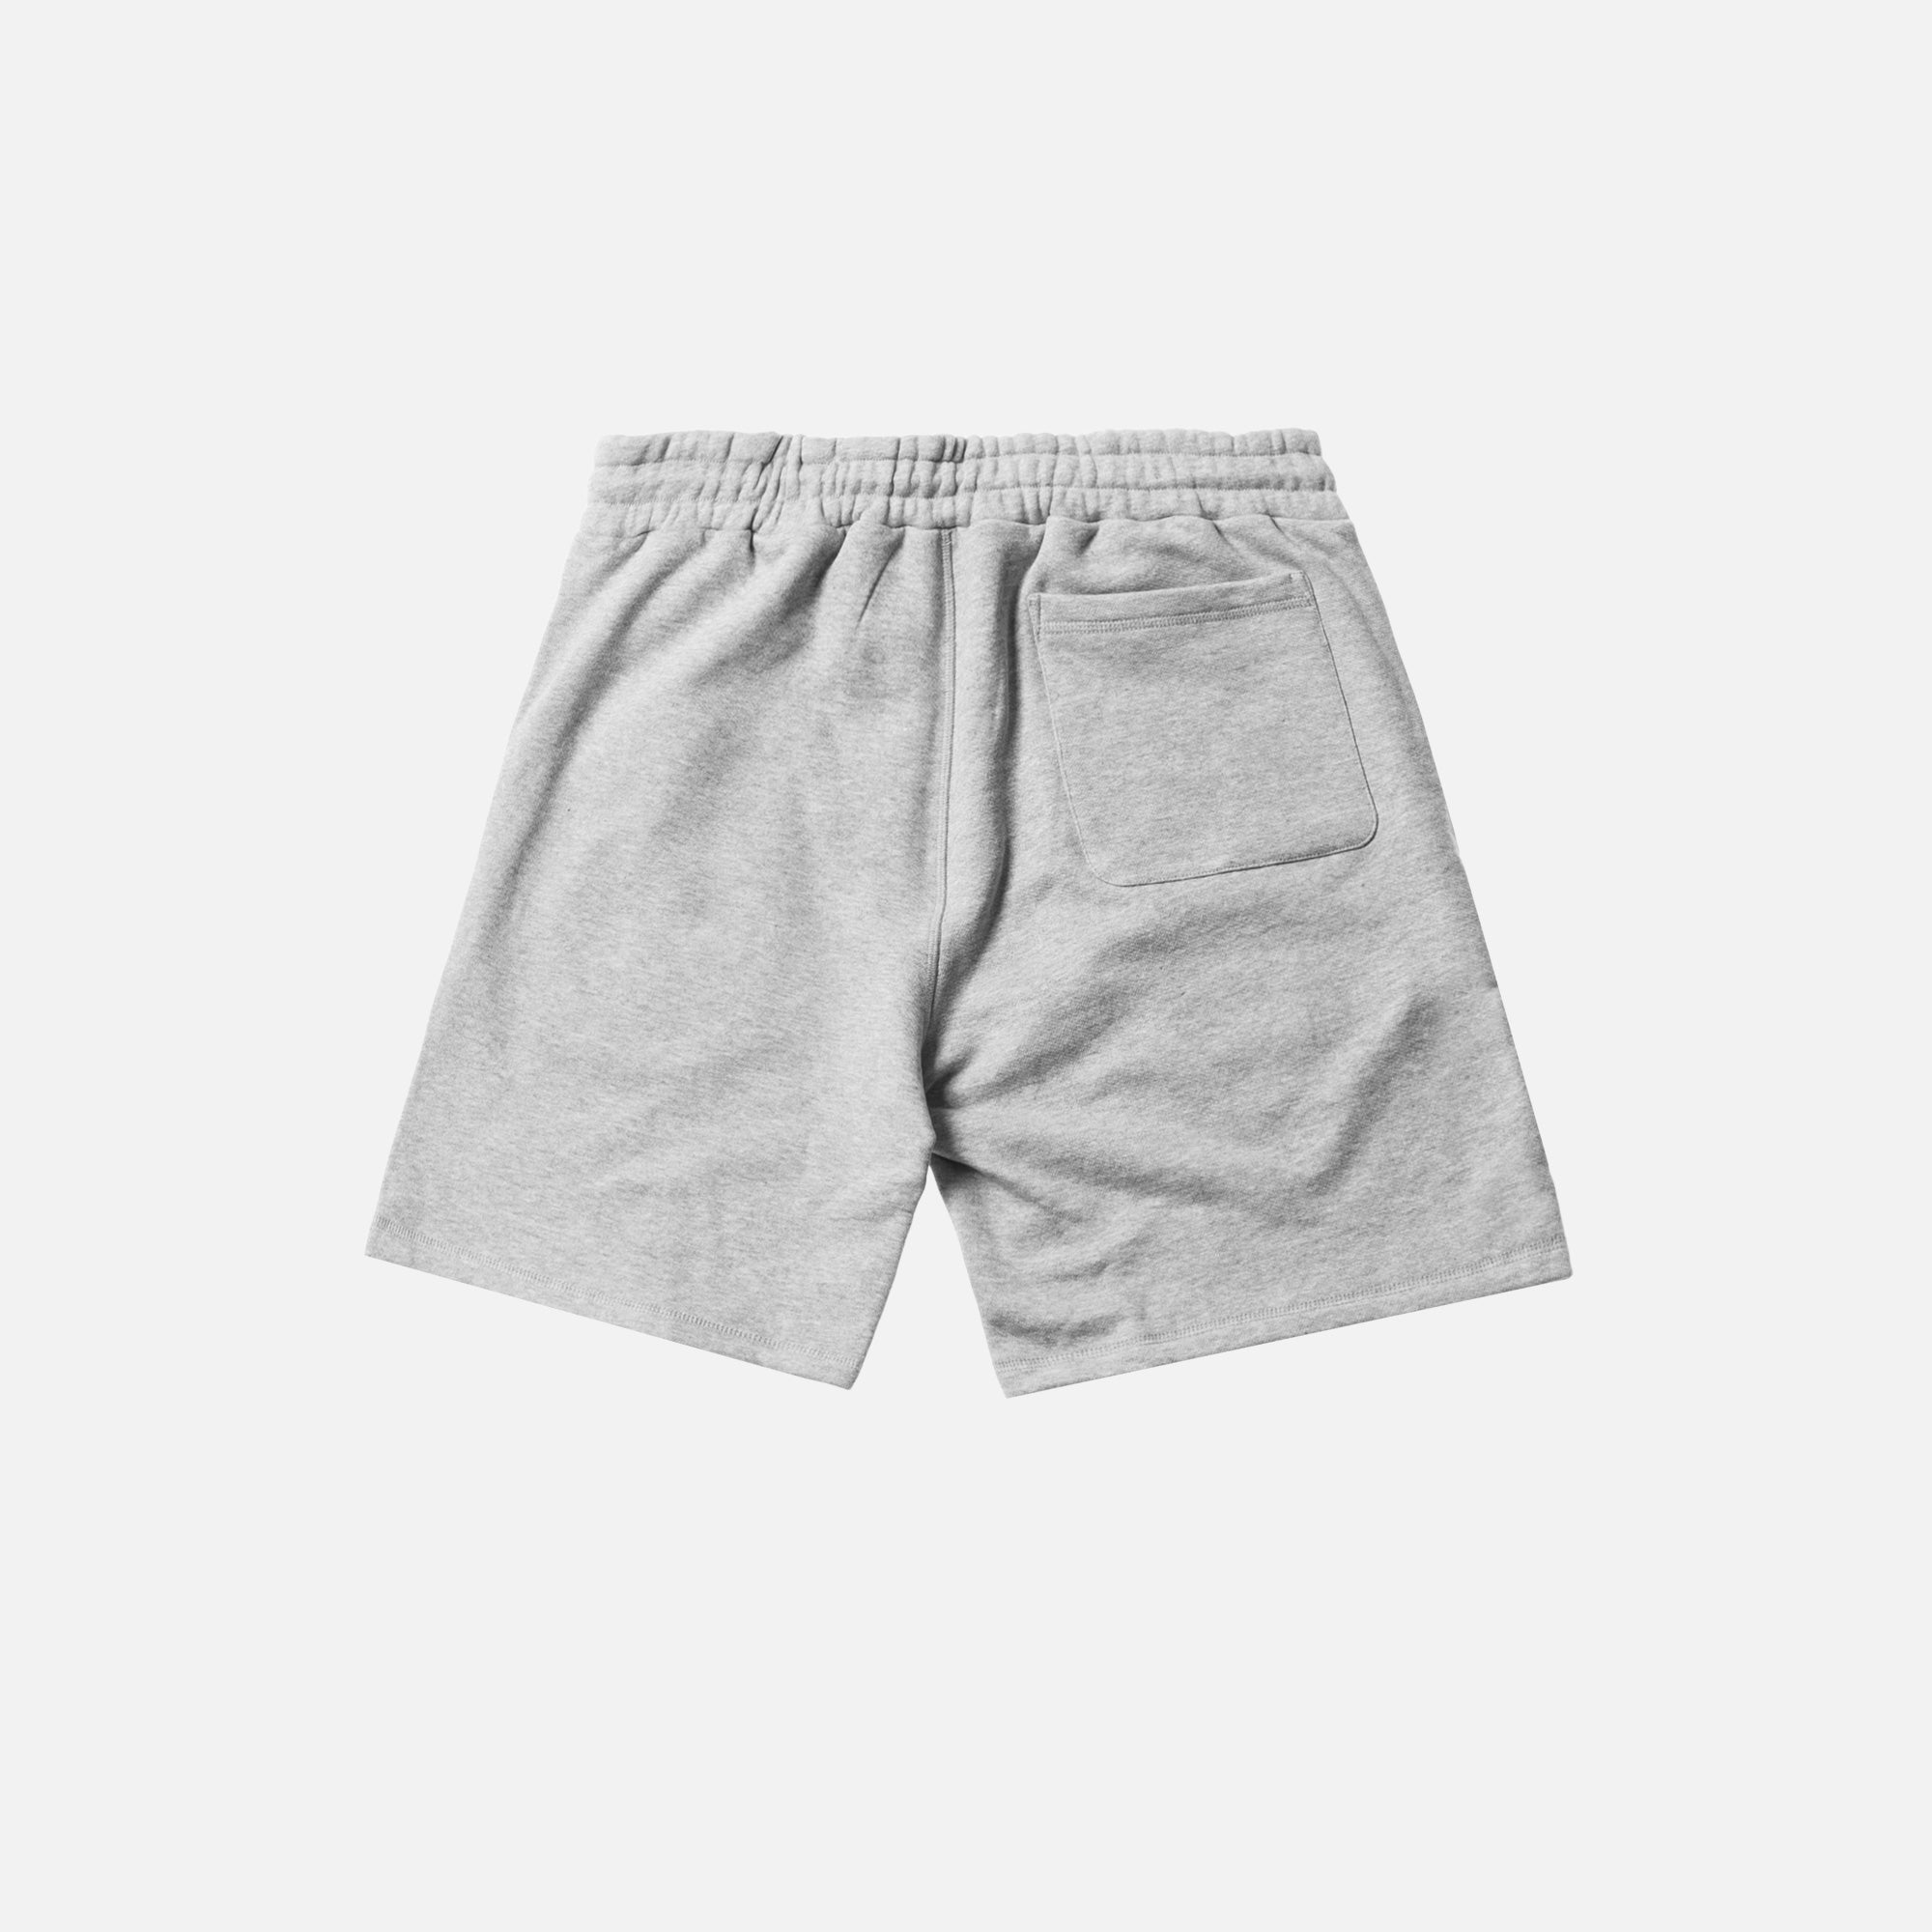 Norse Projects Linnaeus Classic Shorts - Light Grey / Melange